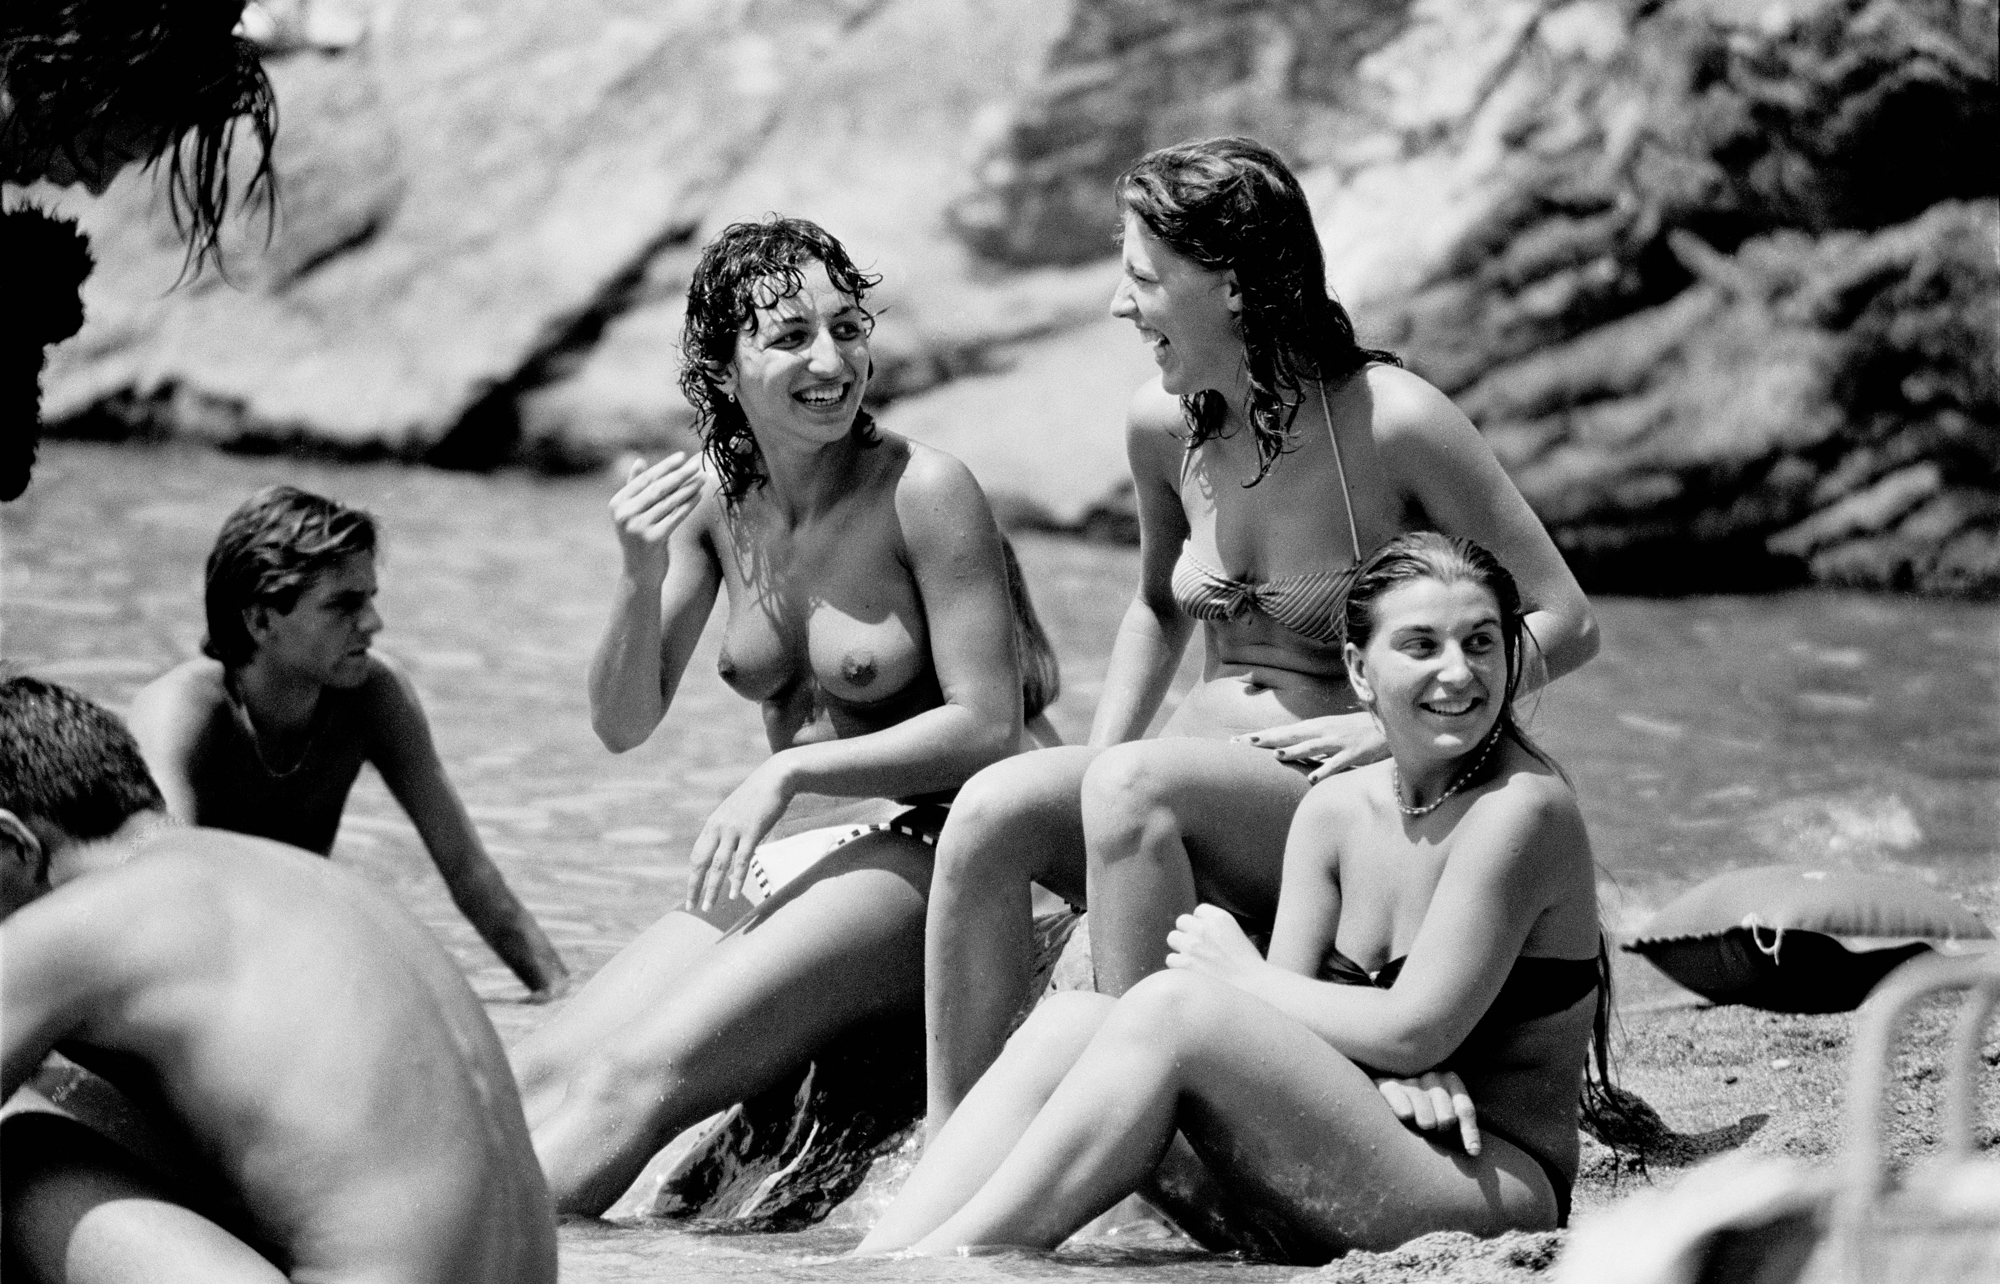 TRAVELS IN ITALY - Girls on the Beach - Italy - early 1980's